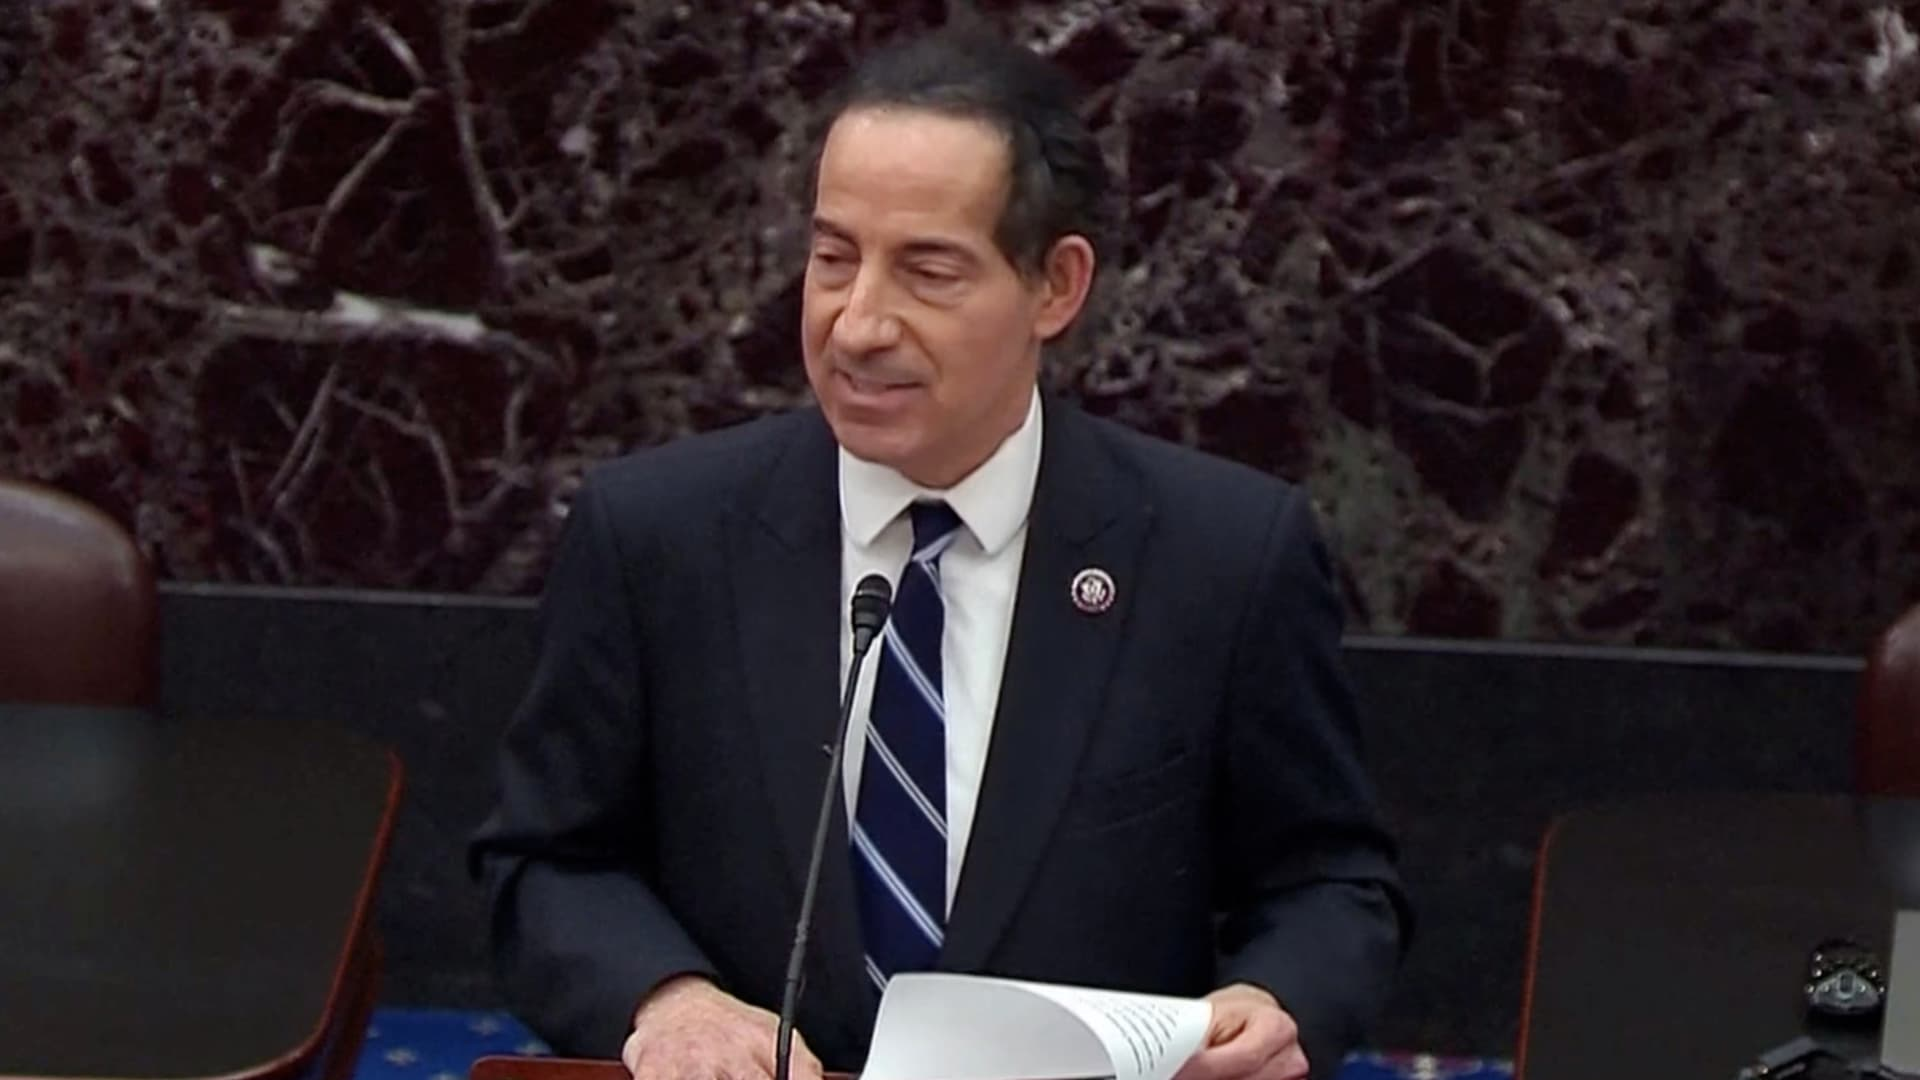 House lead impeachment manager Jamie Raskin (D-MD) reads the House article of impeachment against former President Donald Trump on accusations of inciting the January 6 attack on the Capitol, on the floor of the U.S. Senate in this frame grab from video shot at the U.S. Capitol in Washington, U.S., January 25, 2021.